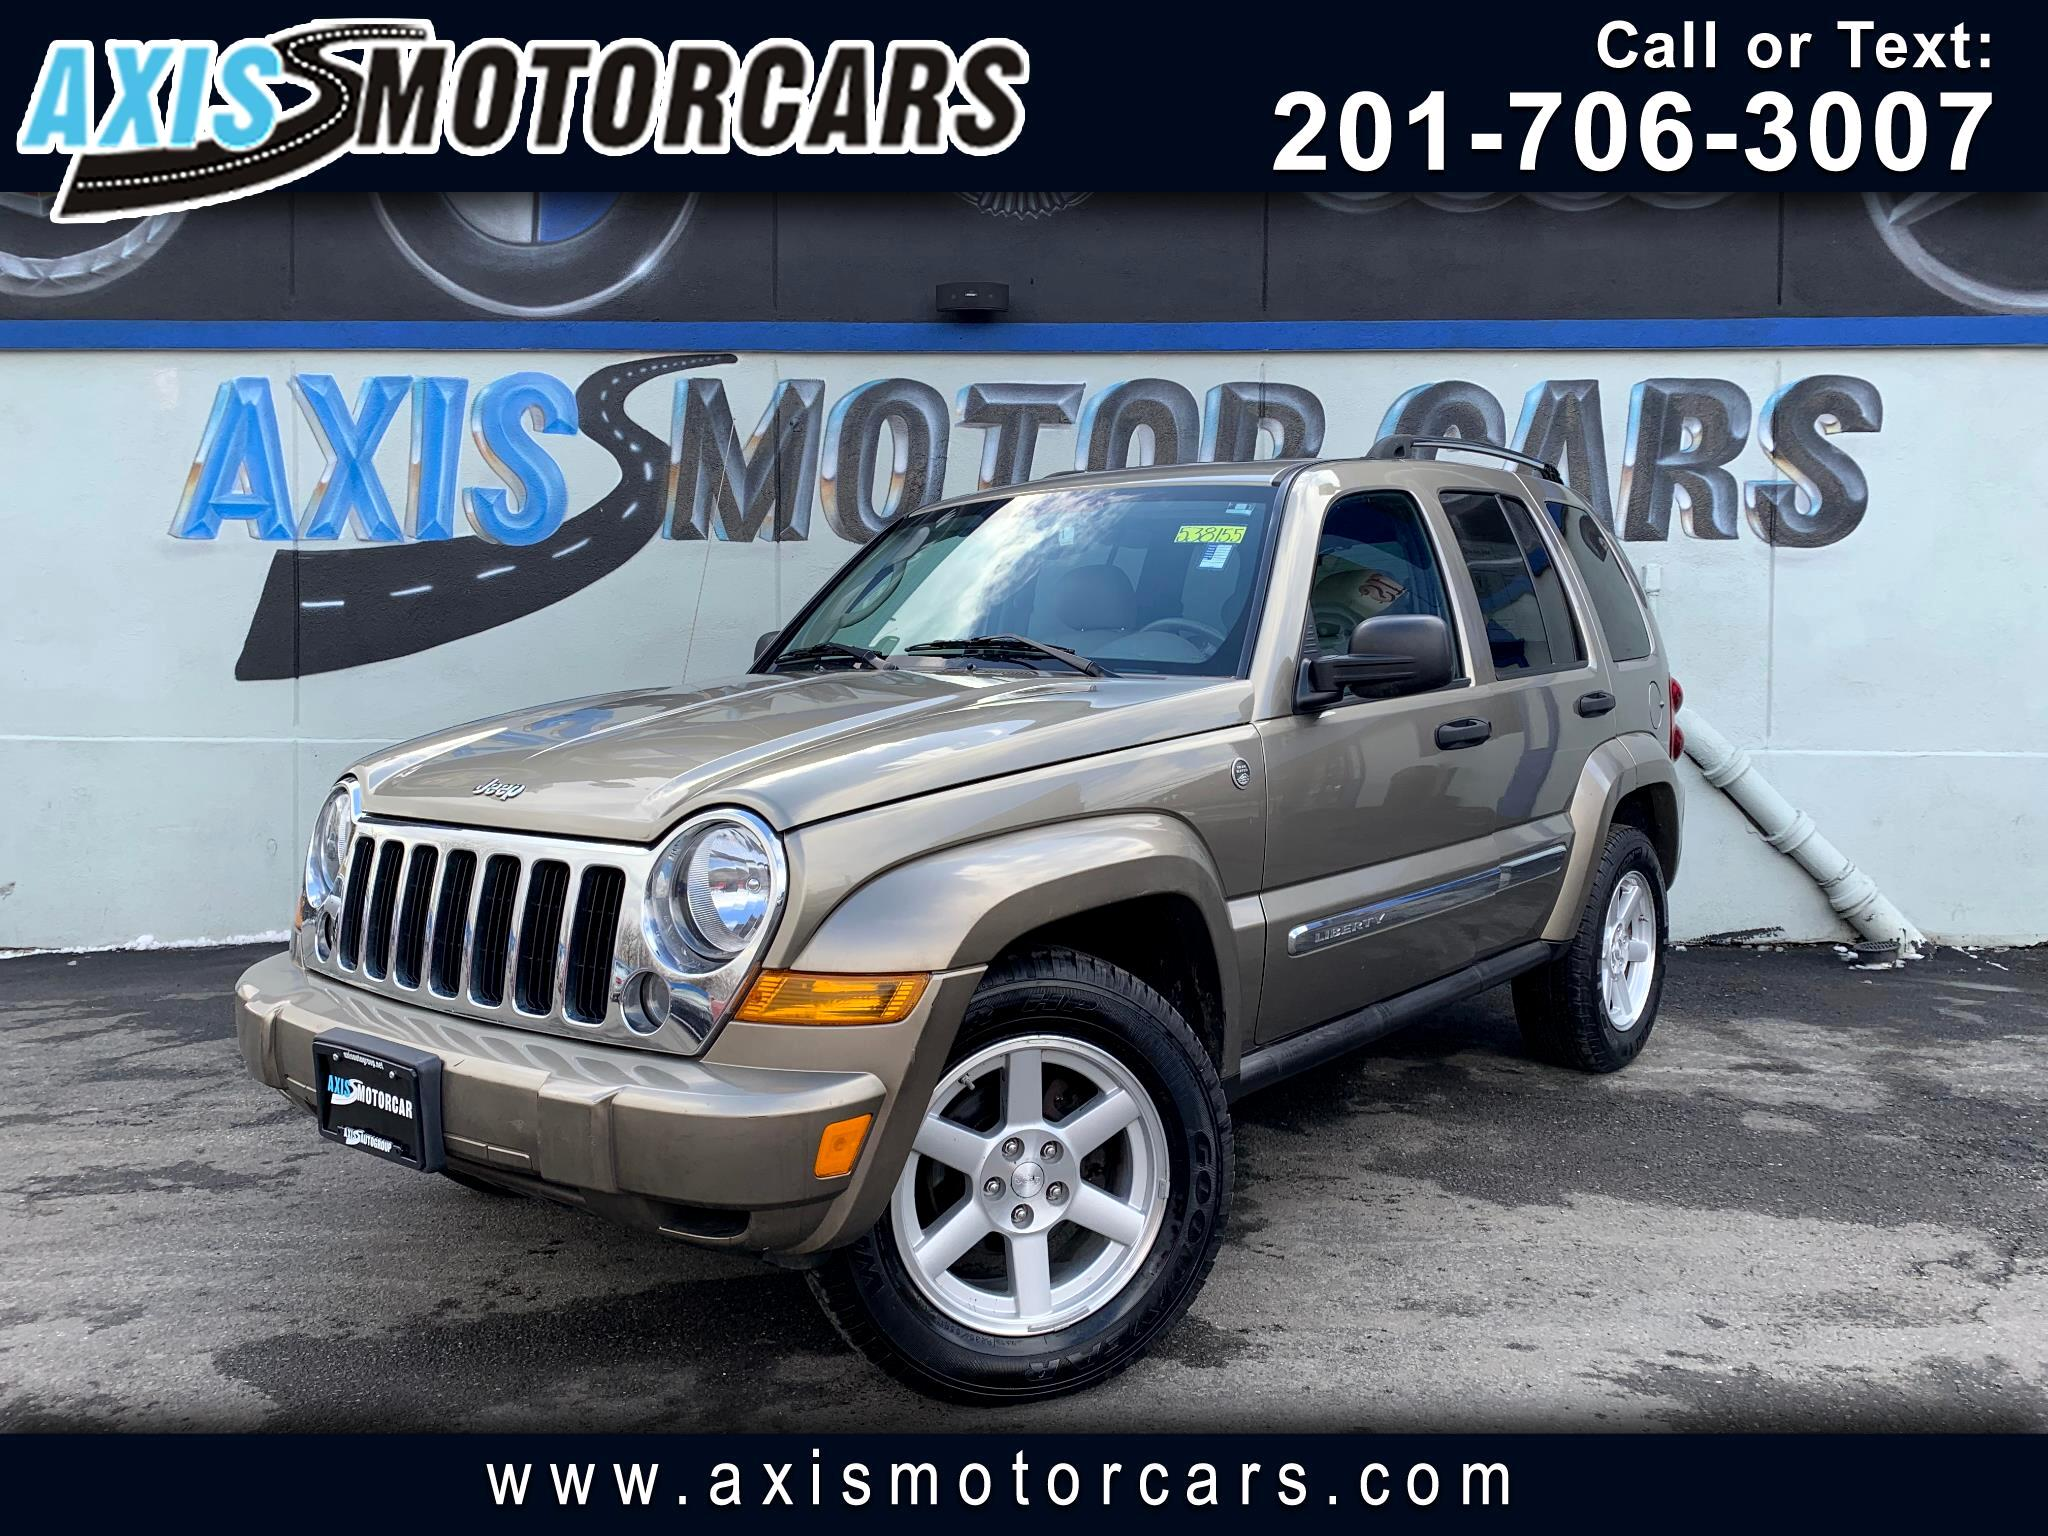 2007 Jeep Liberty Limited w/Sun Roof Leather